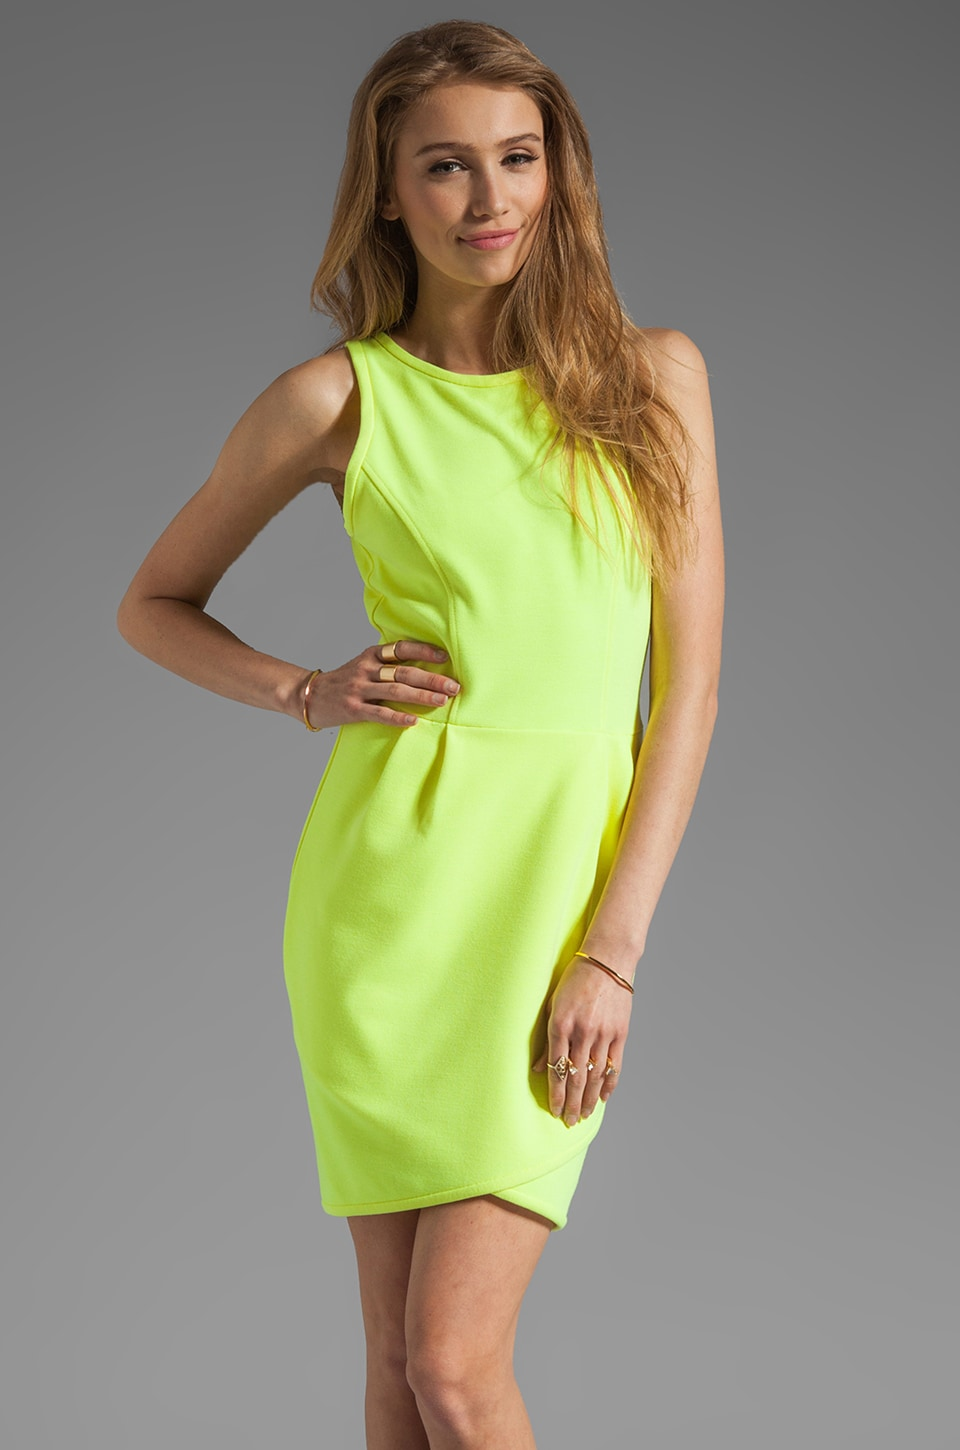 Dolce Vita Hymore Solid Pointe Dress in Yellow